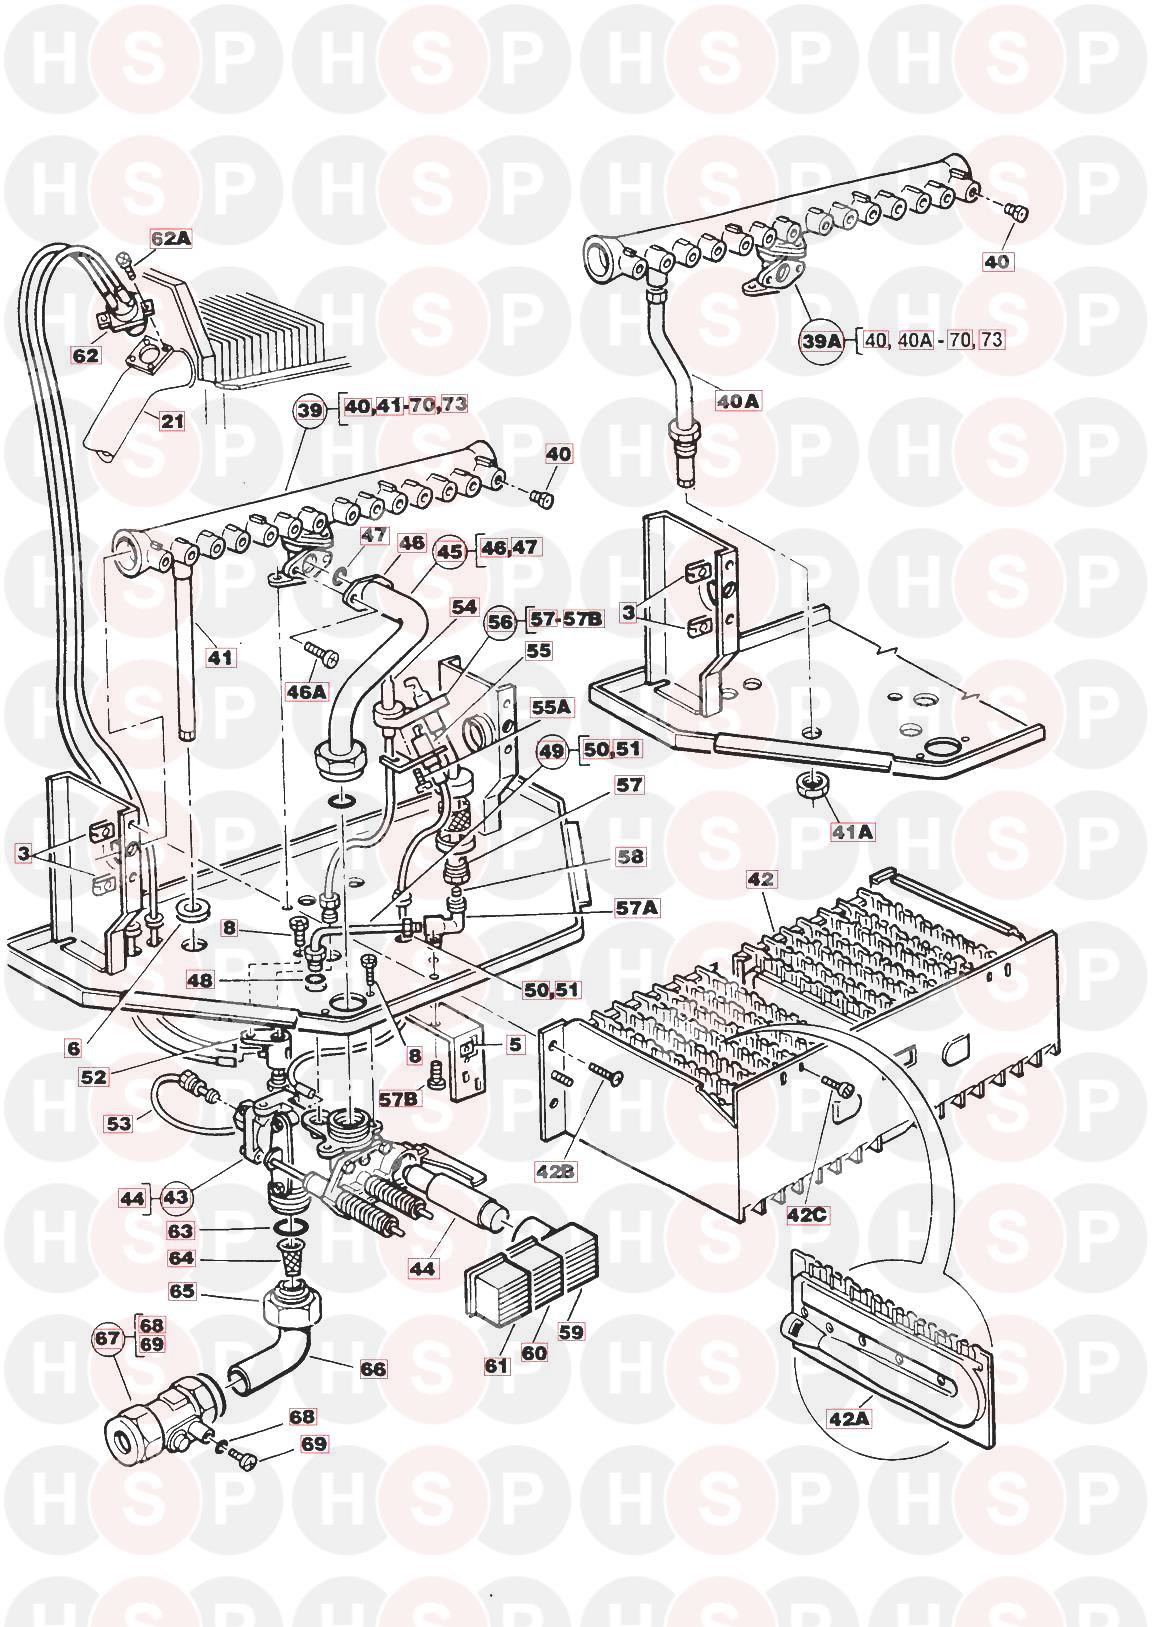 amazing boiler parts diagram gallery